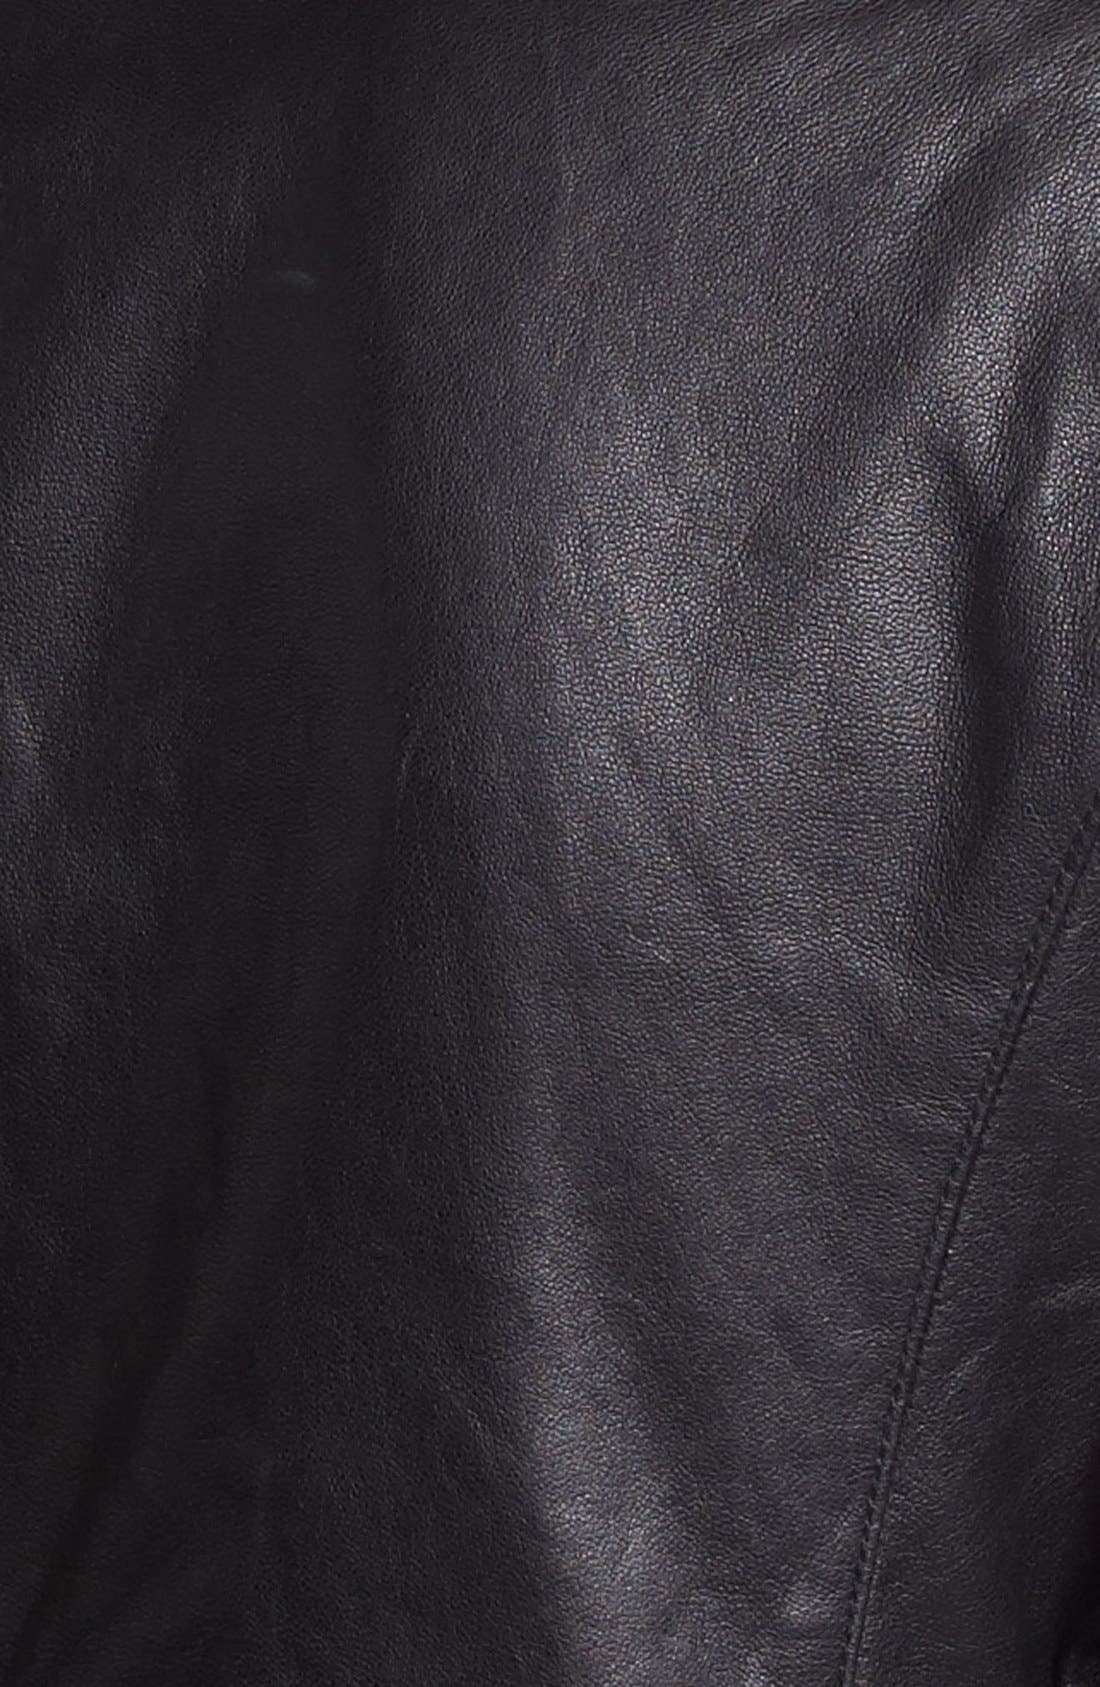 Crop Leather Moto Jacket,                             Alternate thumbnail 3, color,                             001